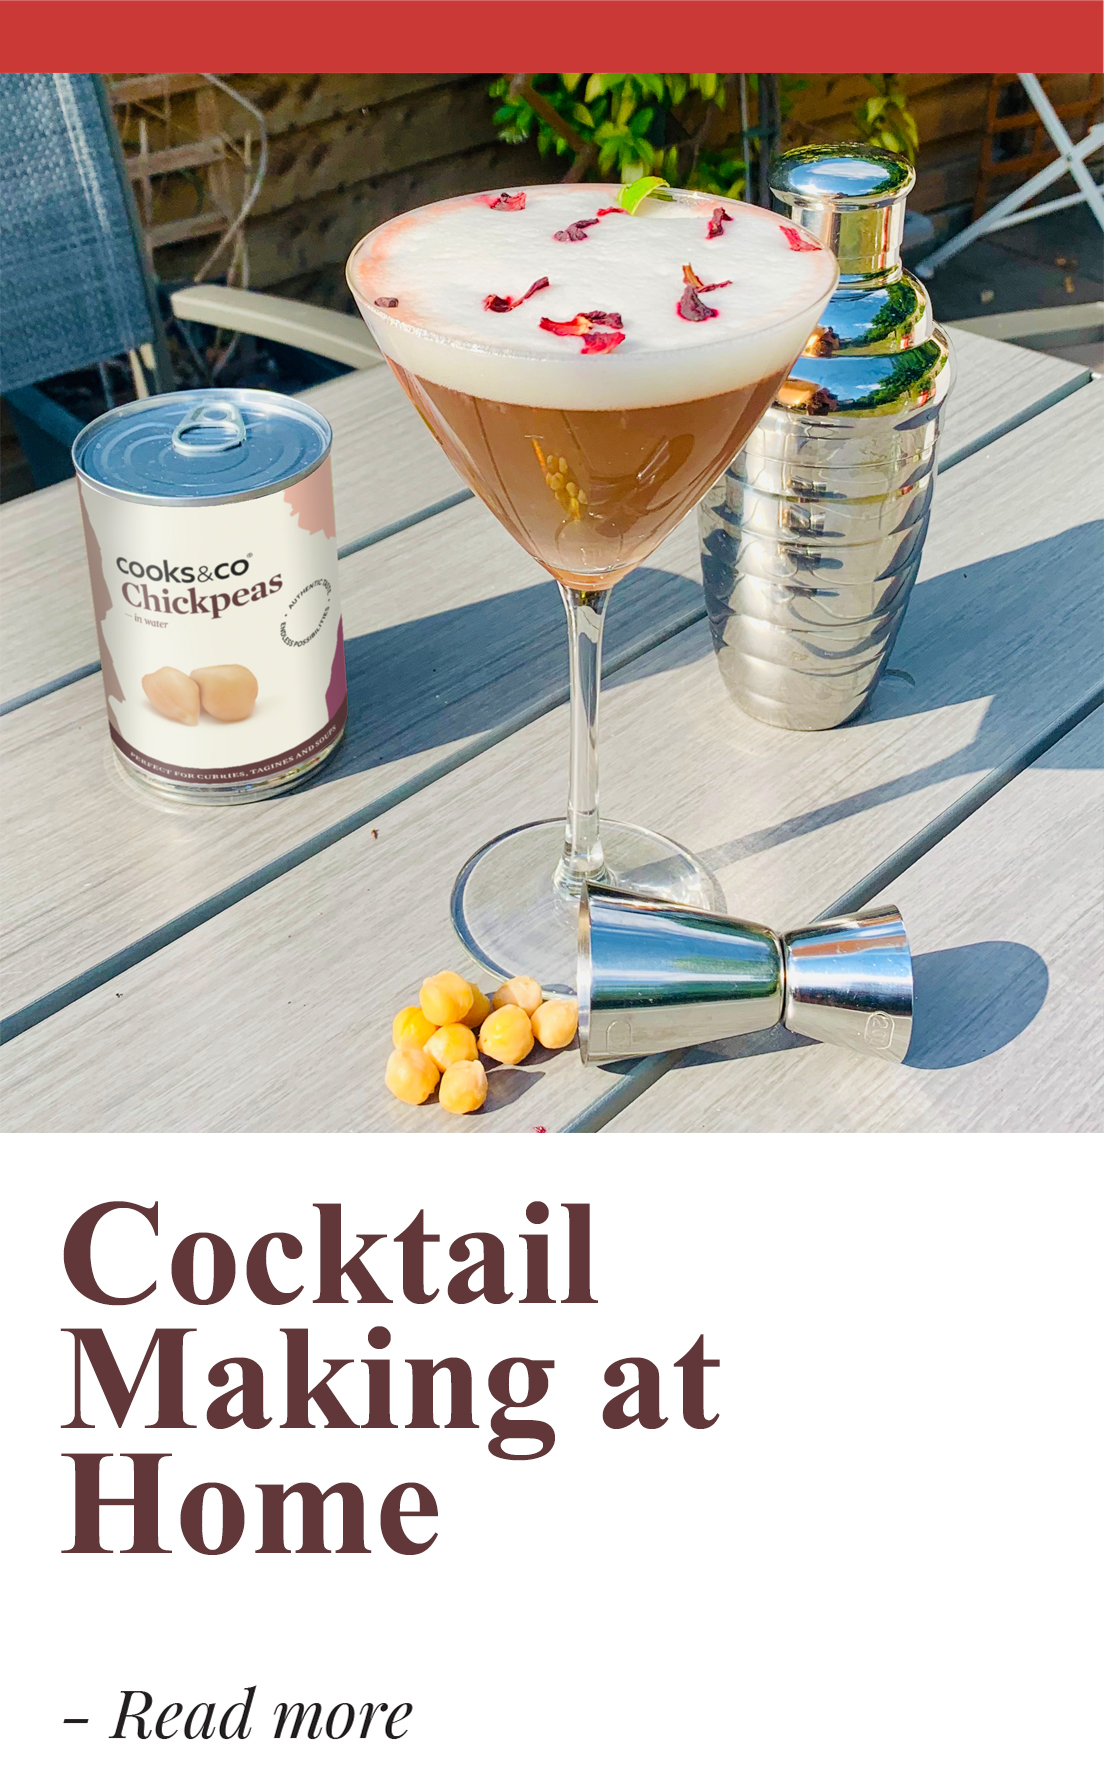 Cocktail Making at Home.jpg